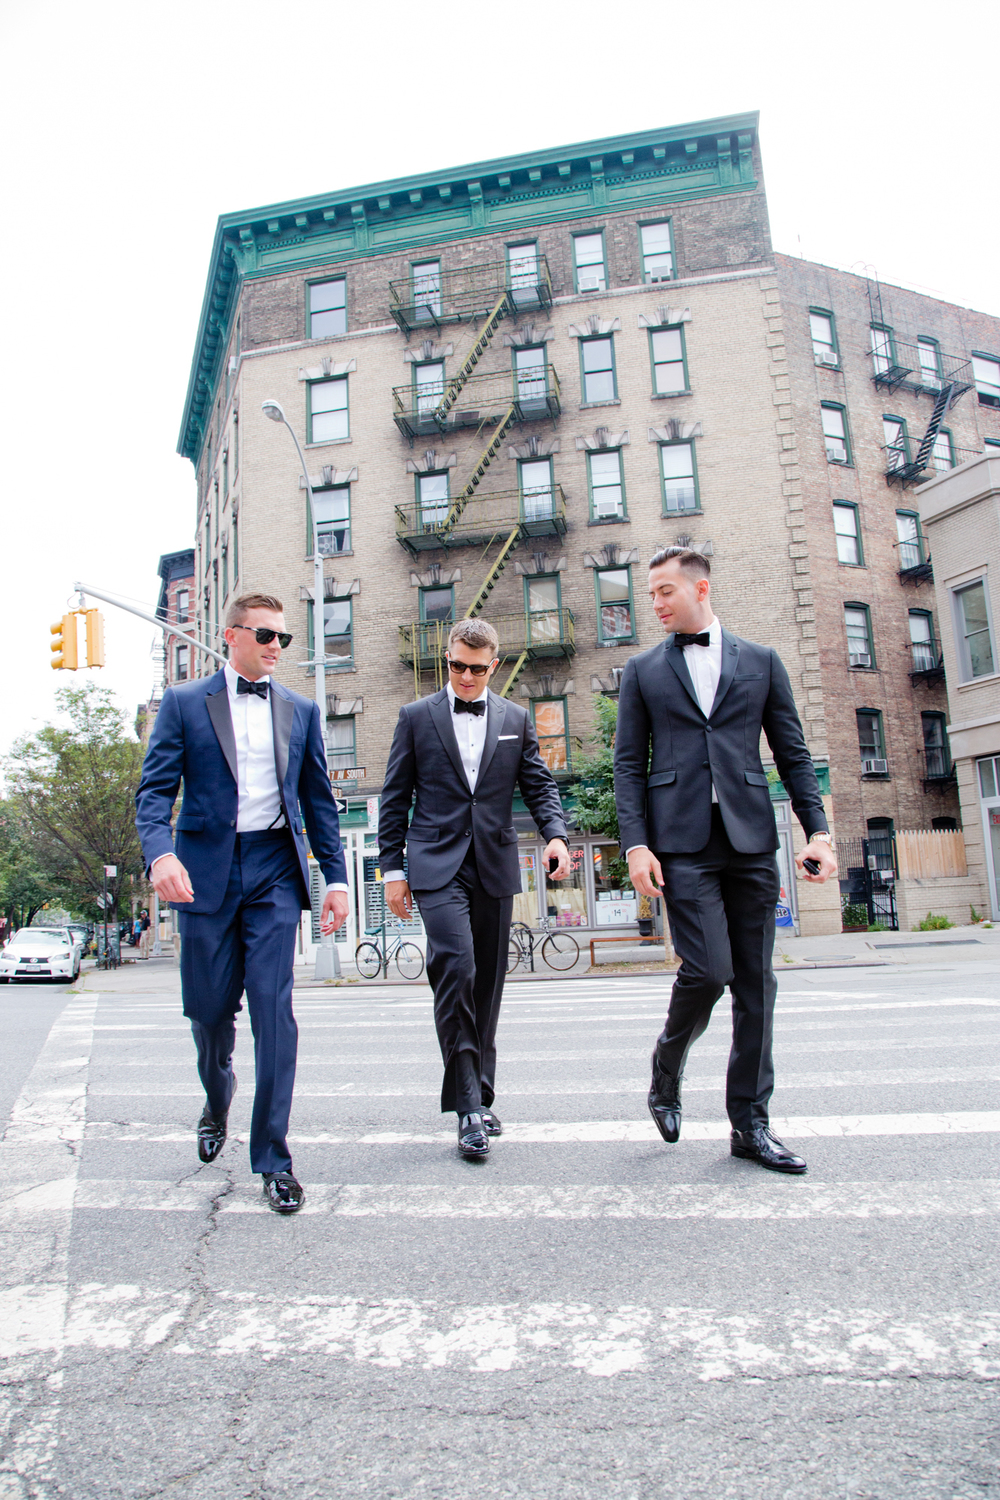 102_CarlyGaebe_SteadfastStudio_WeddingPhotography_Readyluck_NewYorkCity_Manhattan_WestVillage_Groomsmen_Suits.jpg